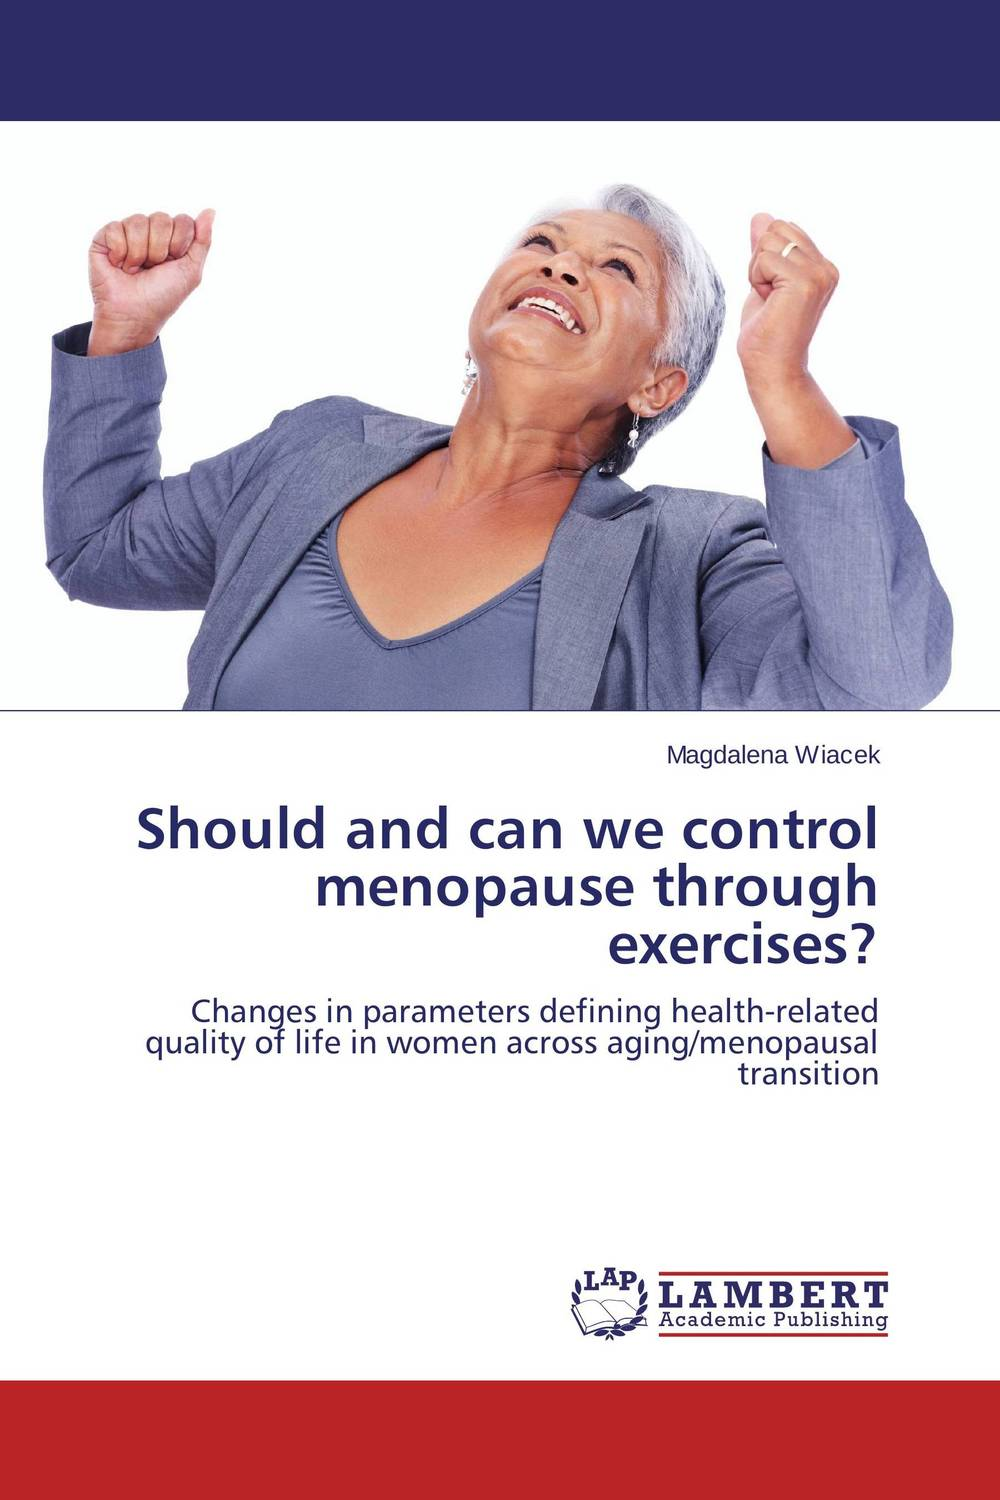 Should and can we control menopause through exercises? midlife madness or menopause